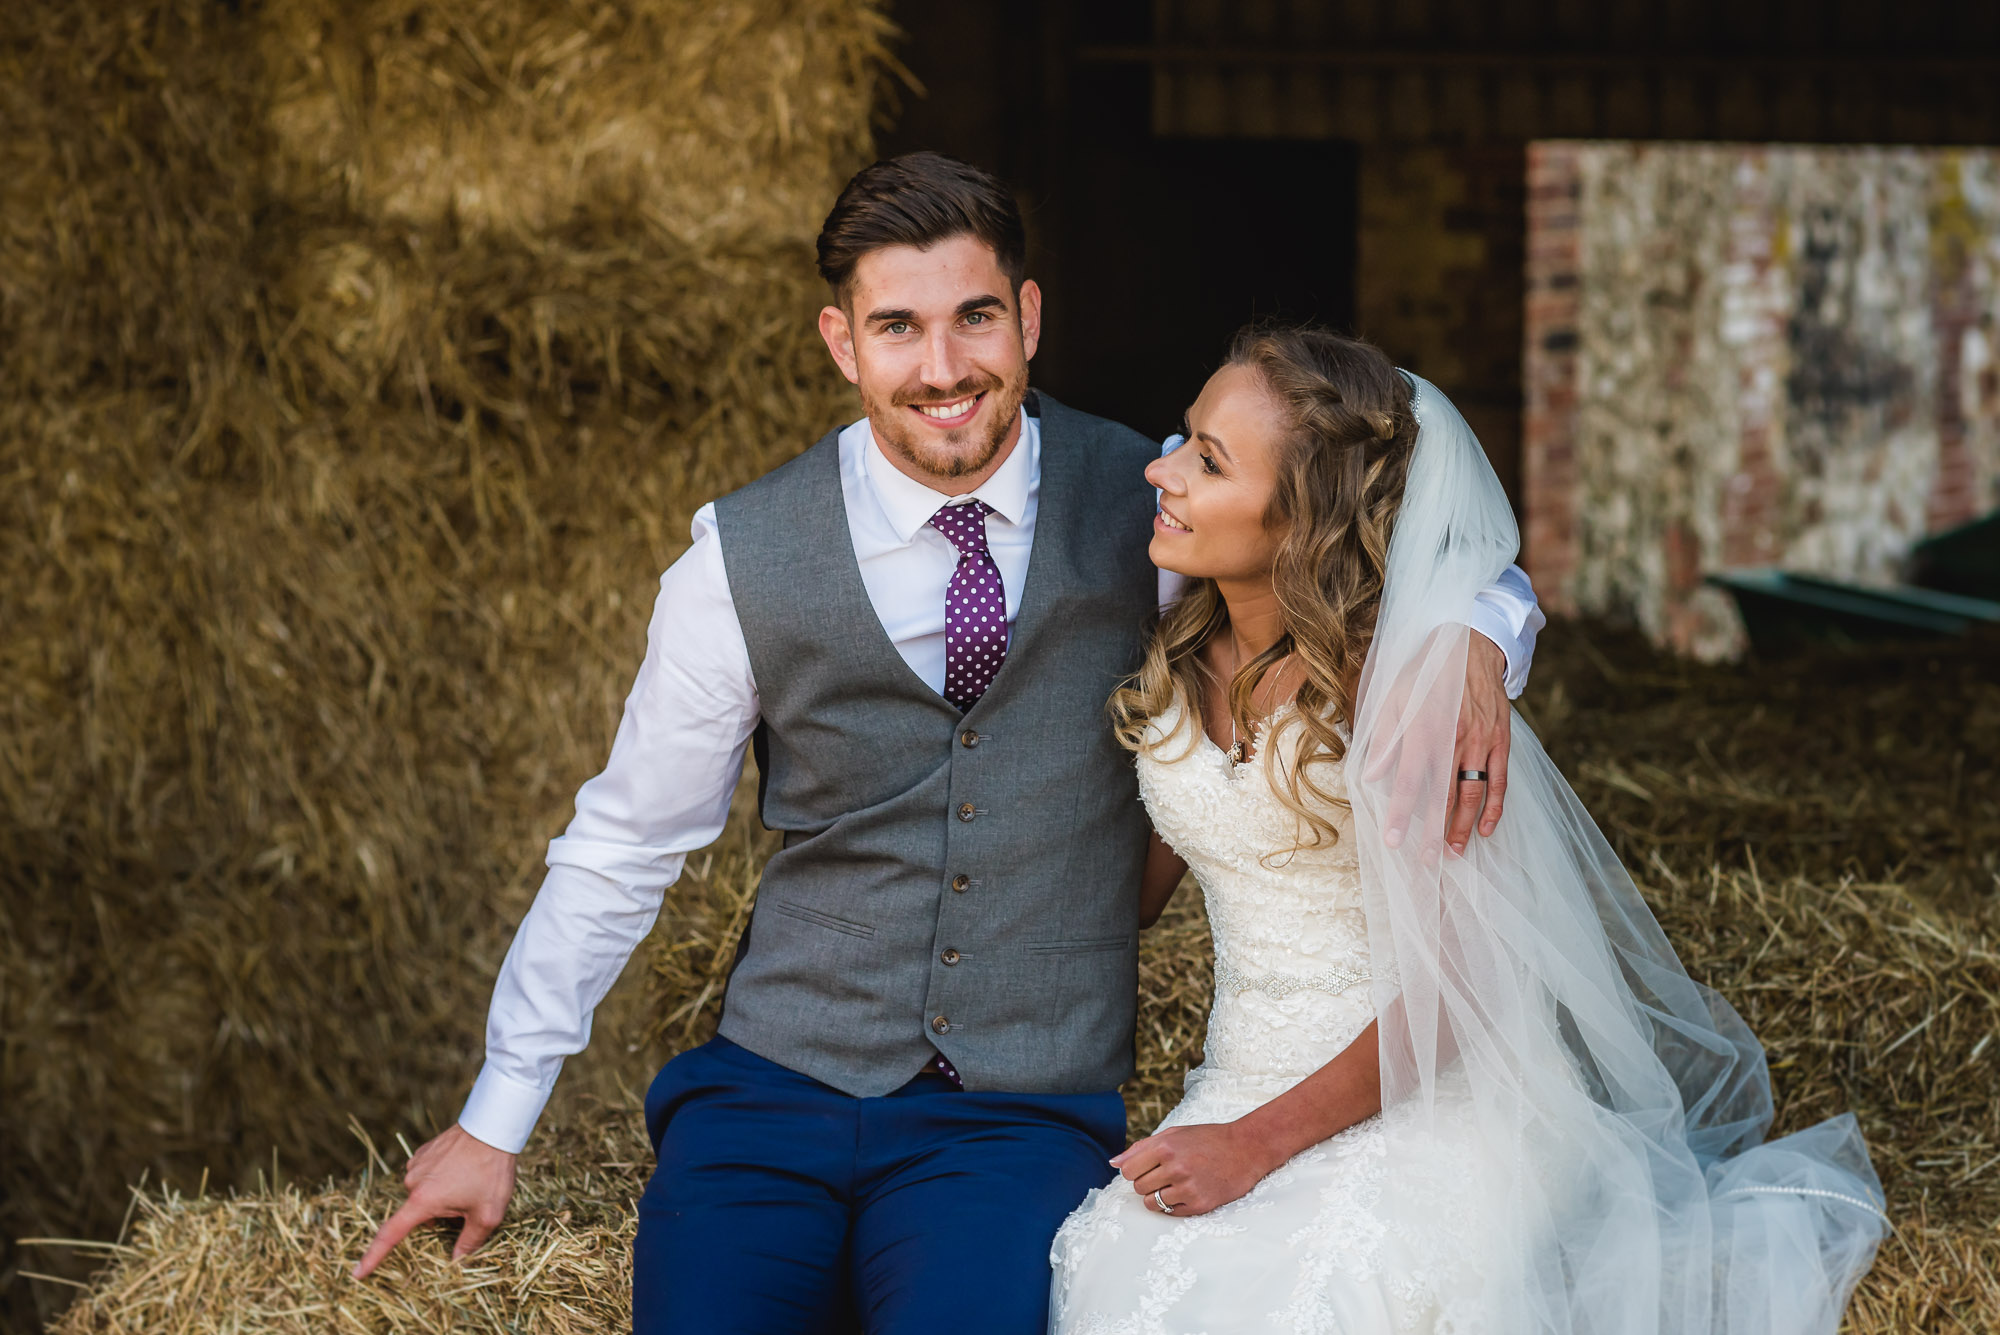 Sussex Barn Norfolk wedding photography – Kerri & Eddy